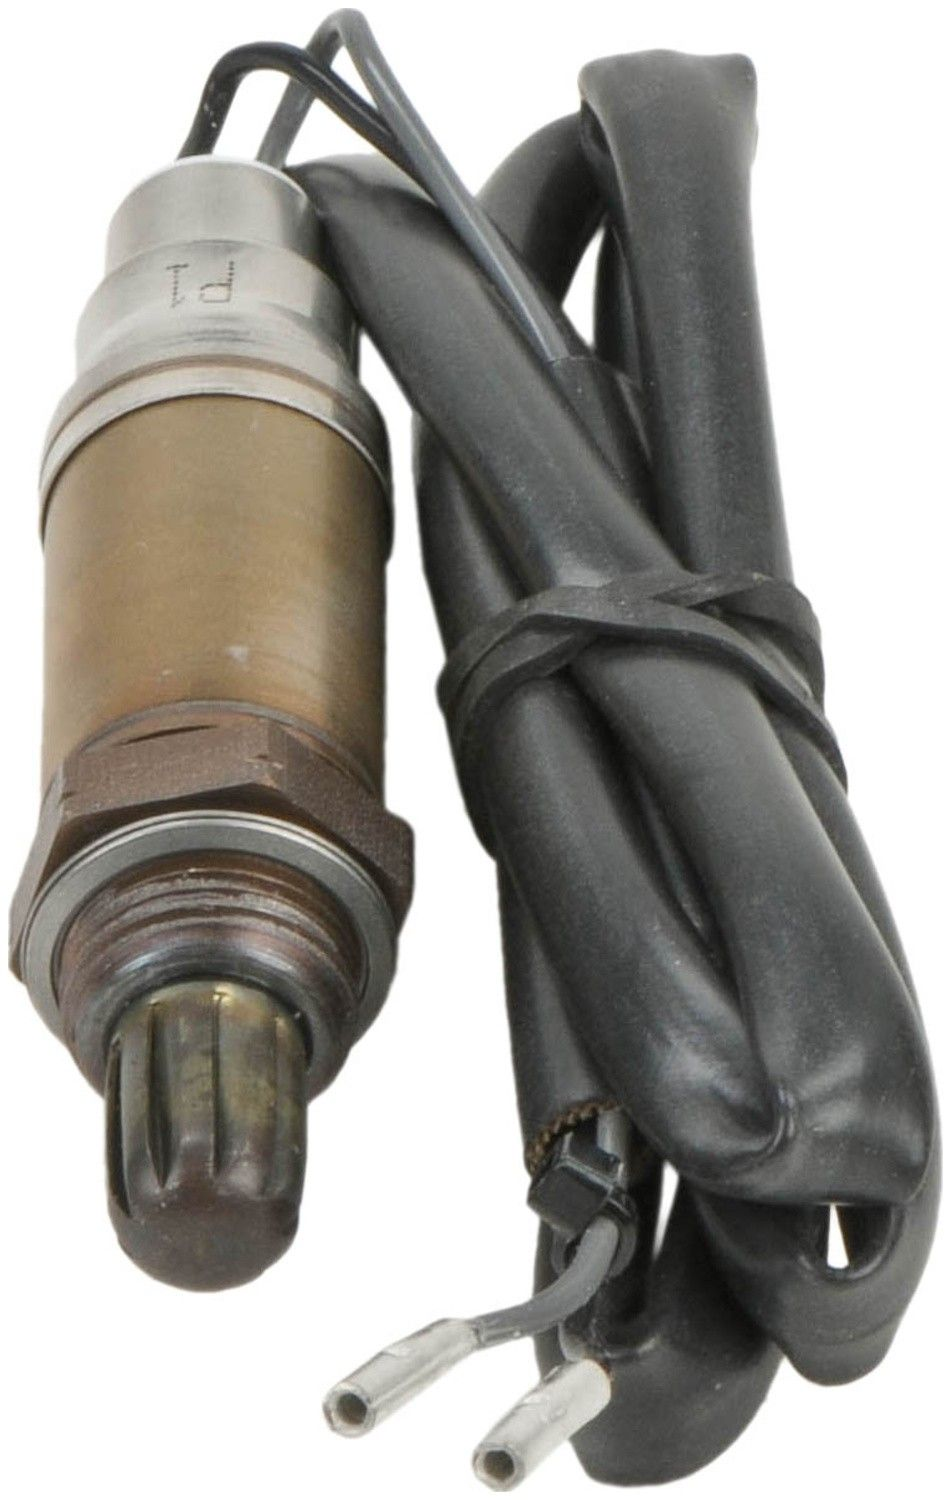 Geo Prizm Oxygen Sensor Replacement Bosch Delphi Denso Ngk For A 1995 Engine Diagram Upstream 4 Cyl 18l 12211